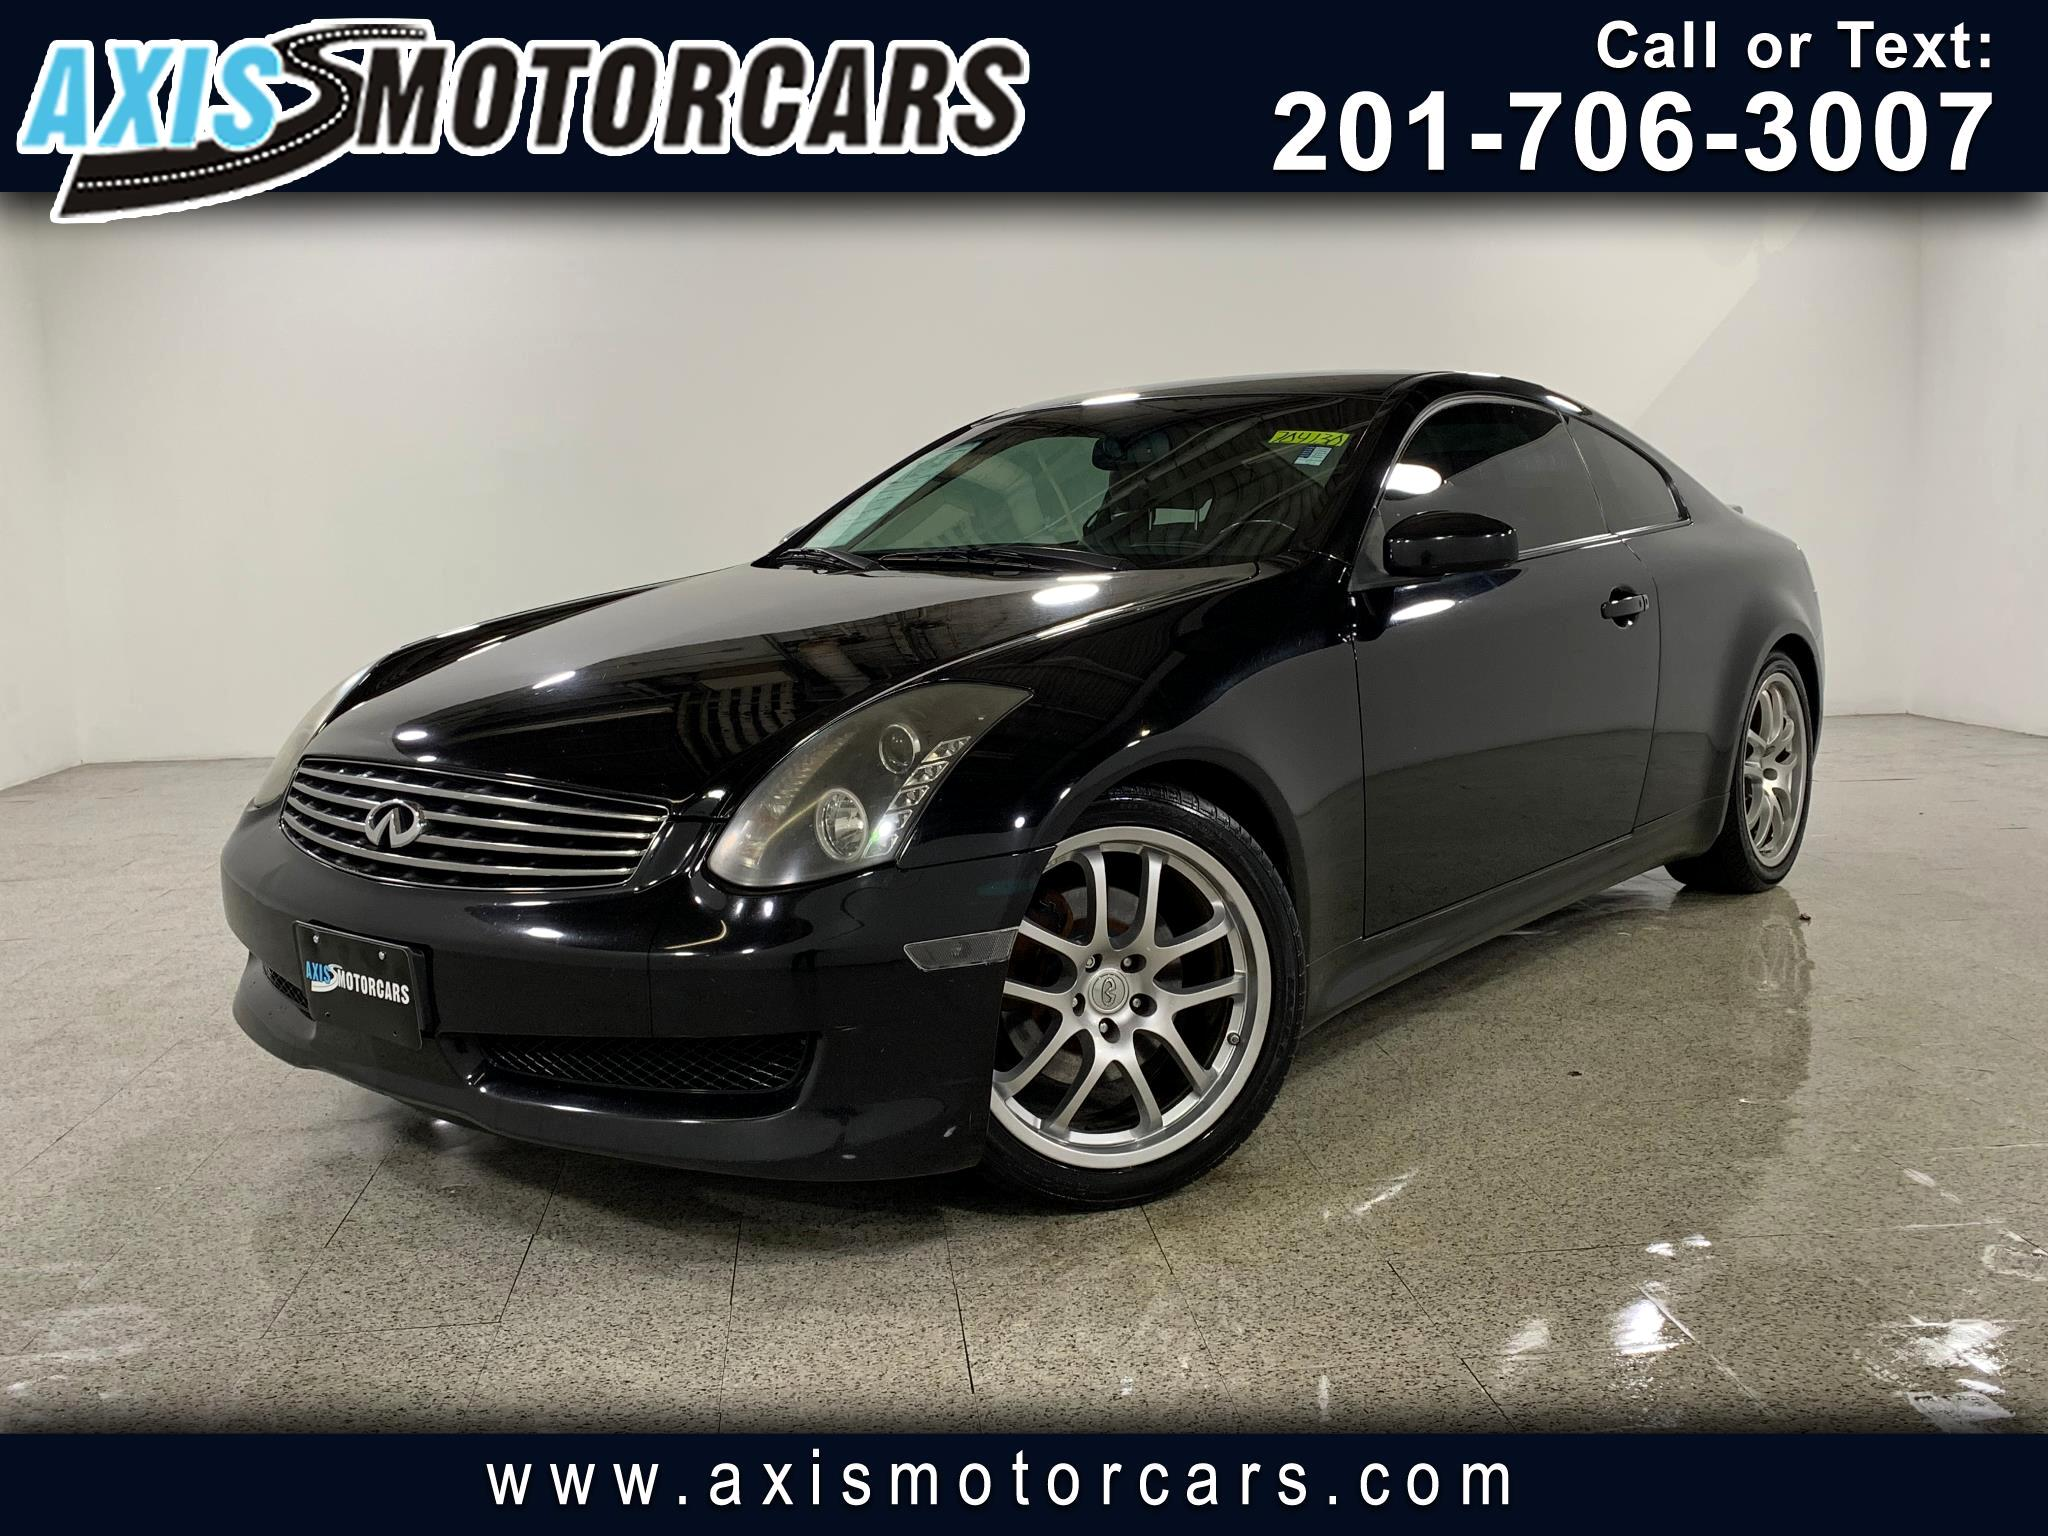 2006 Infiniti G35 Cpe w/Sunroof Leather